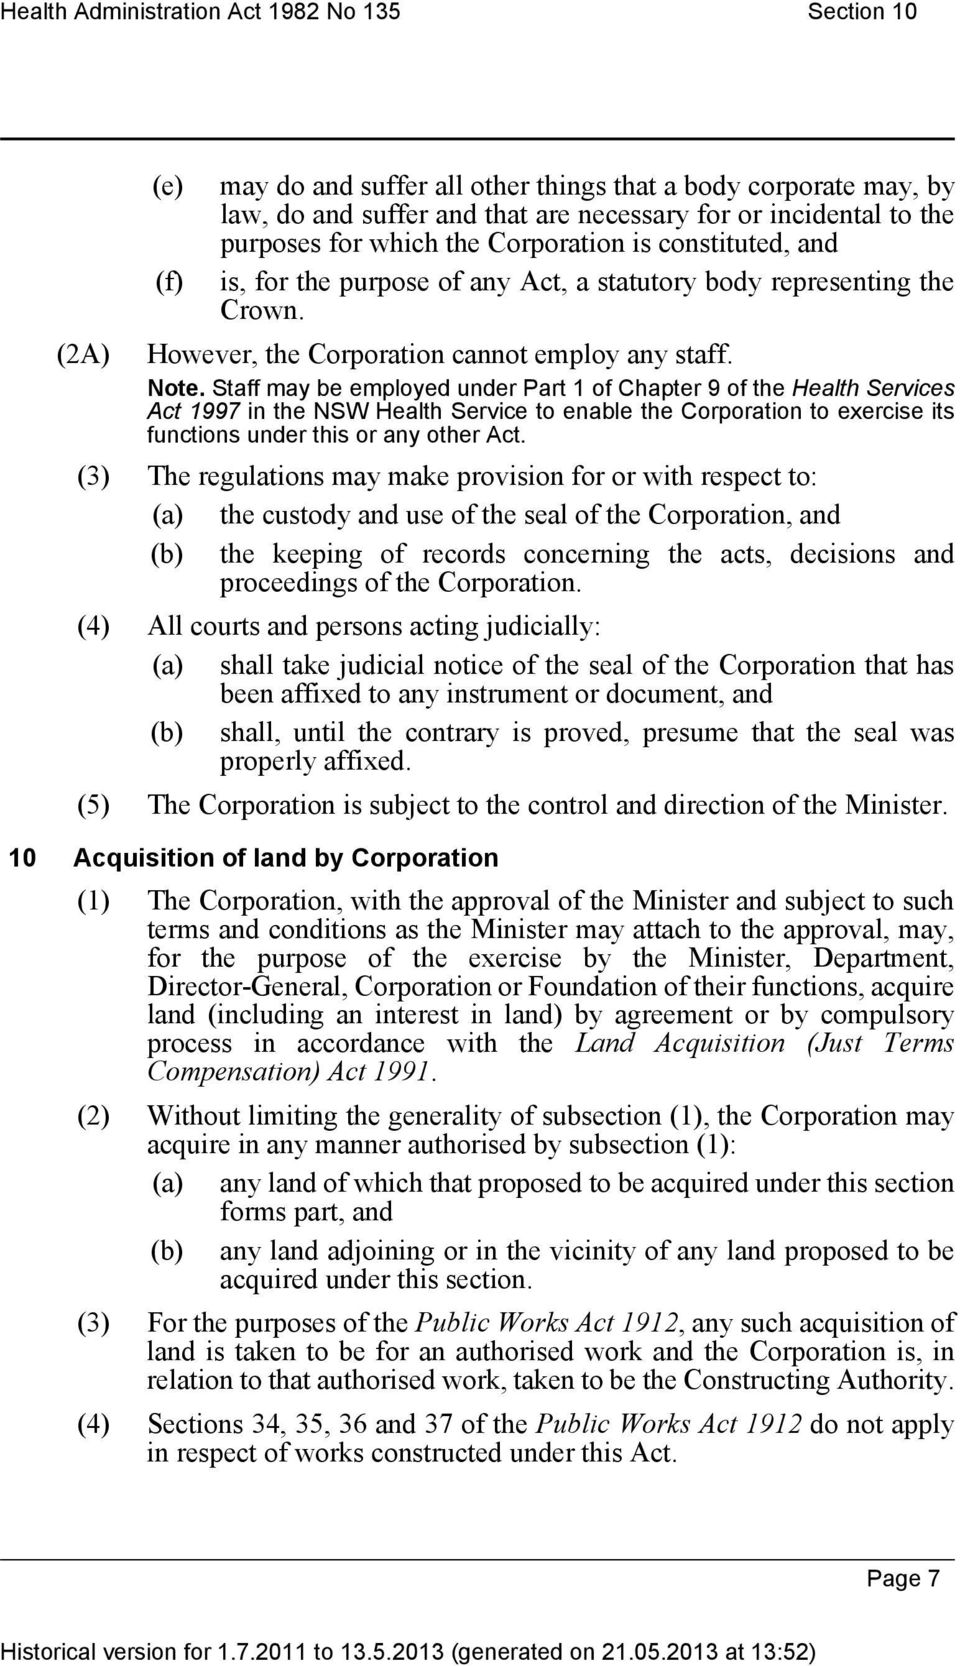 Staff may be employed under Part 1 of Chapter 9 of the Health Services Act 1997 in the NSW Health Service to enable the Corporation to exercise its functions under this or any other Act.